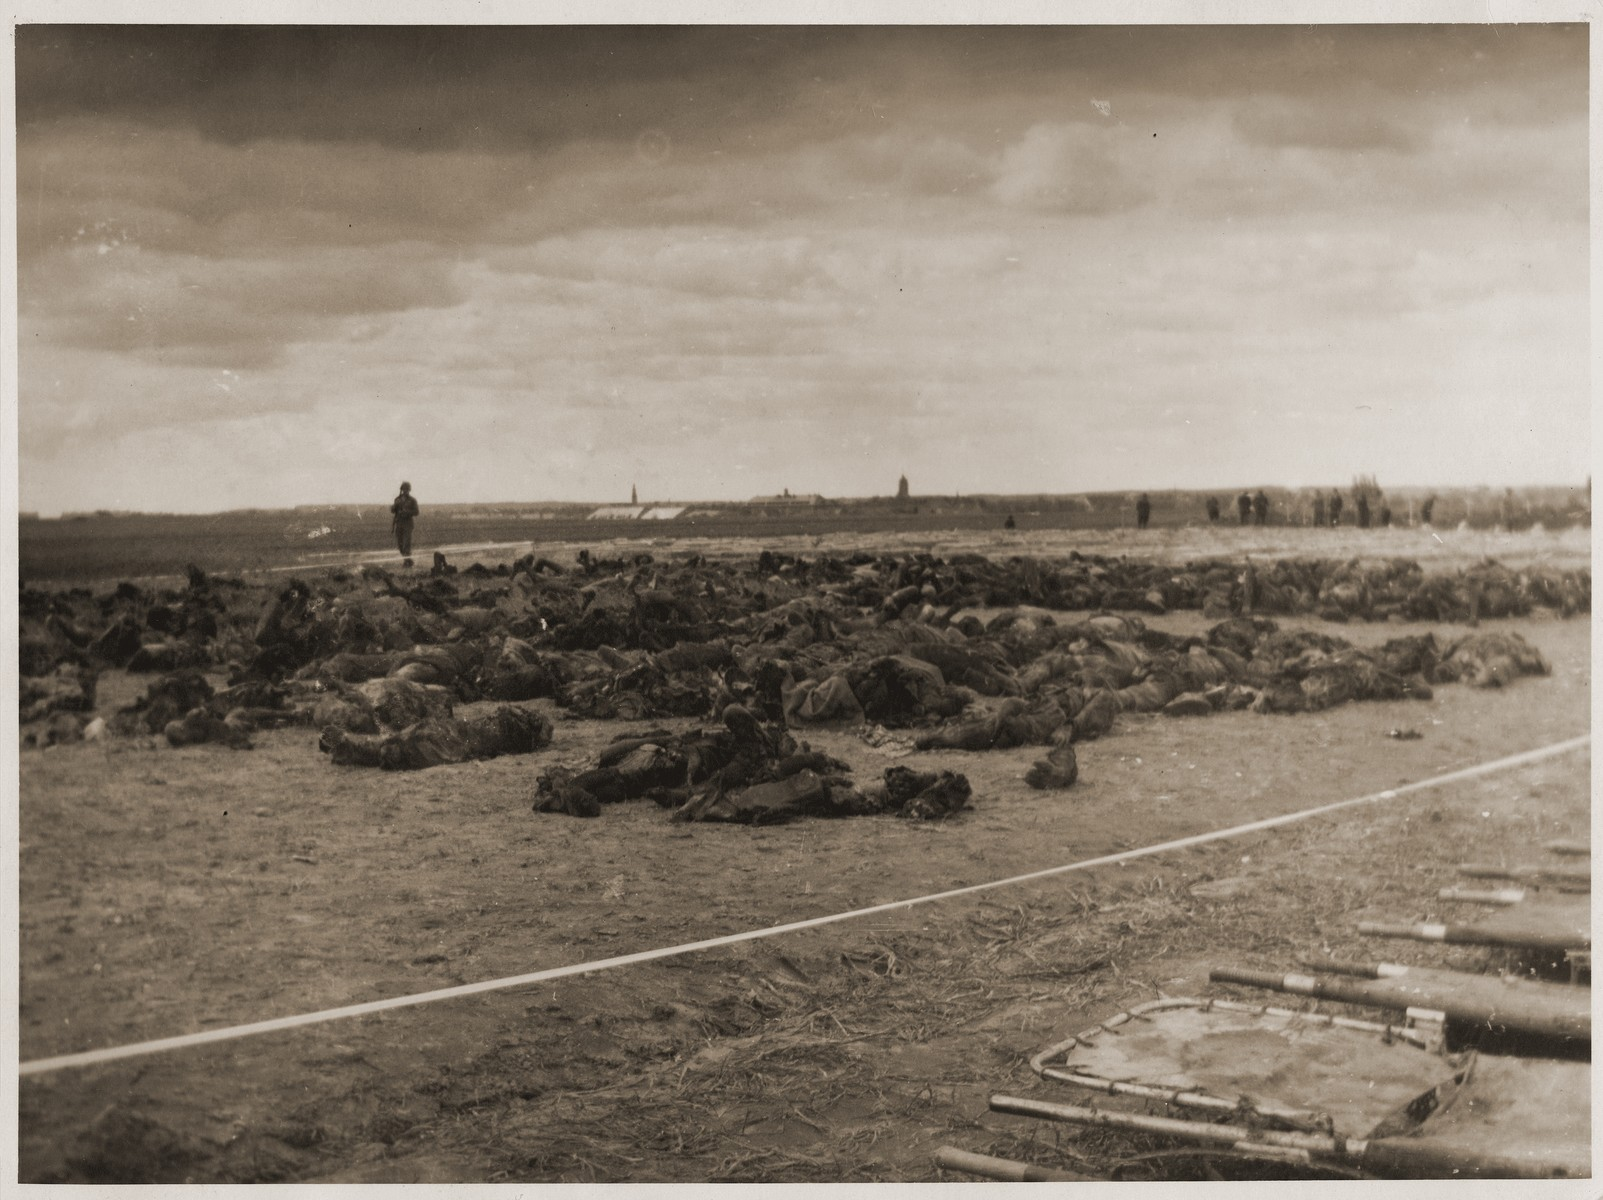 An American soldier looks at the bodies of concentration camp prisoners killed by the SS in a barn just outside of Gardelegen.  In the background, Germans prepare mass graves in which to bury the victims.